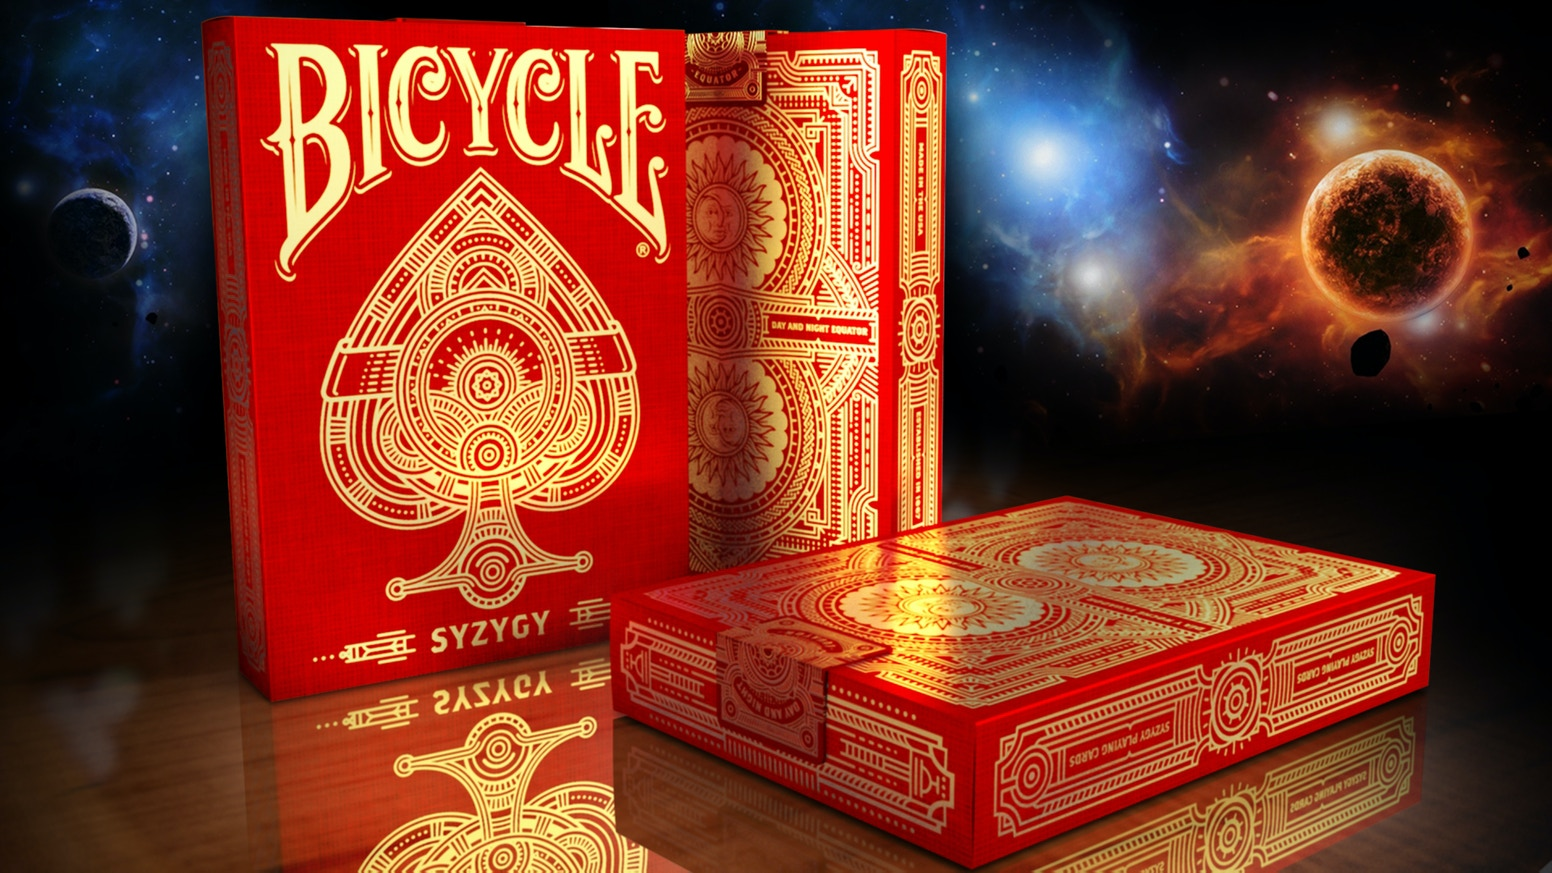 Syzygy bicycle playing cards deck by elite playing cards kickstarter 56 luxury hand crafted playing cards printed by the uspcc biocorpaavc Choice Image